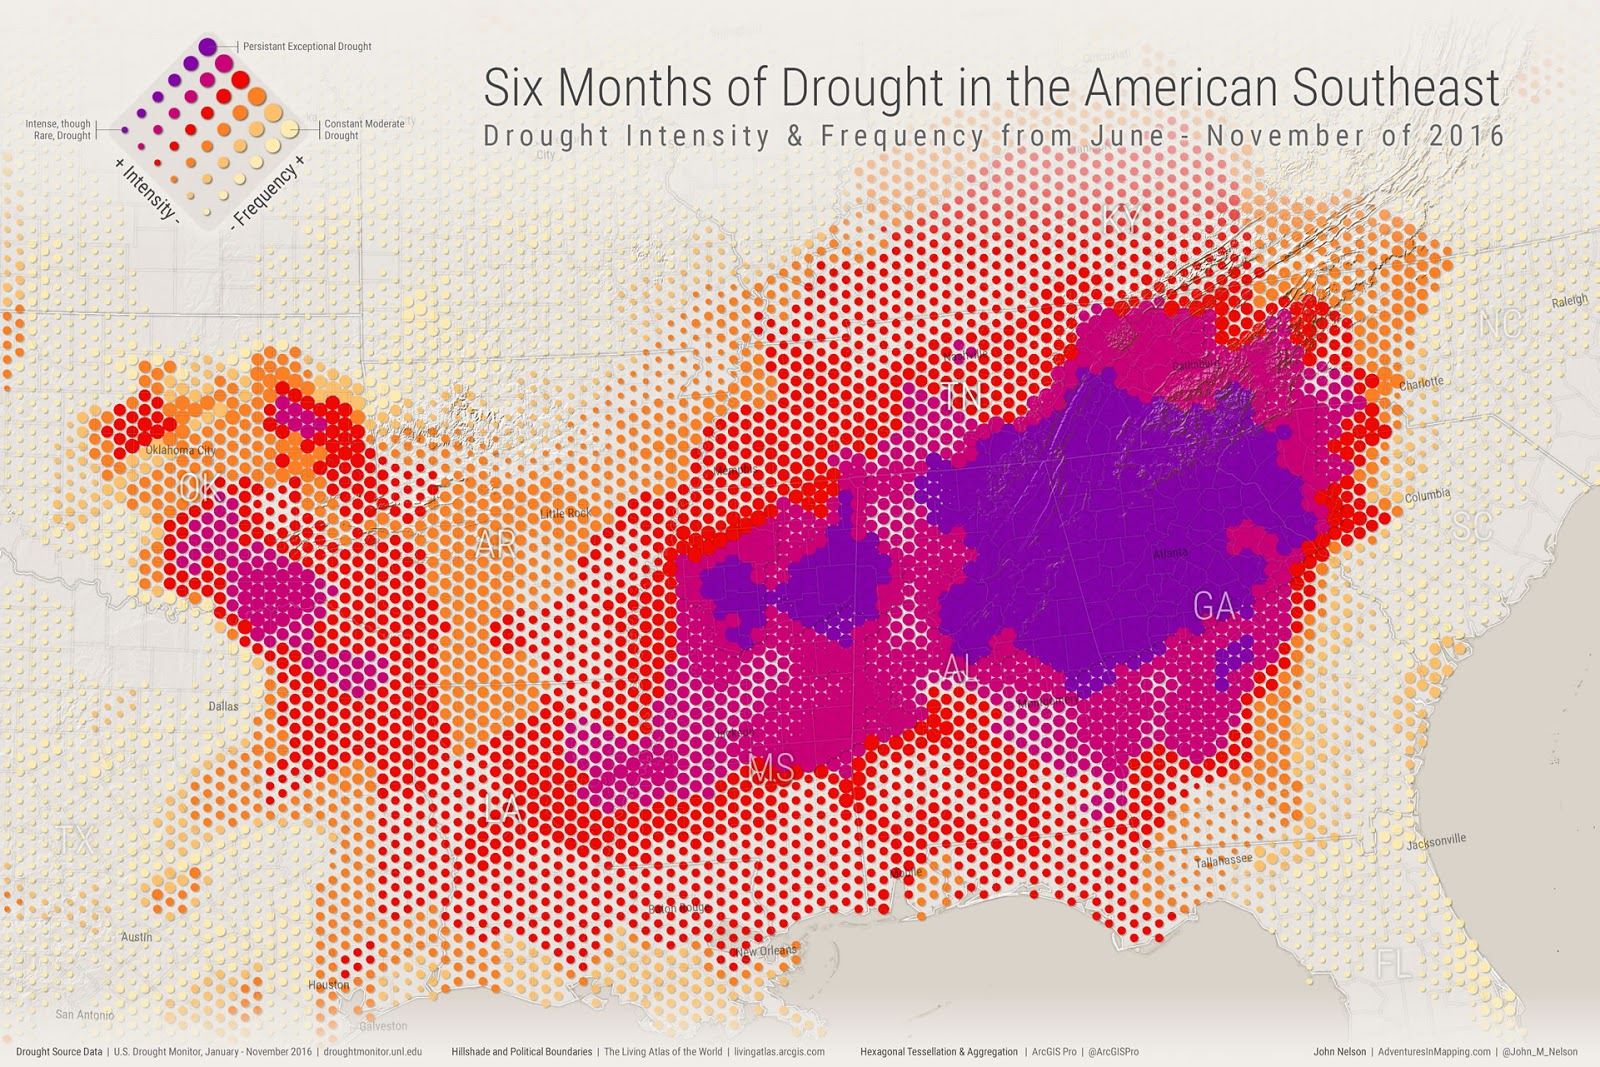 6 months of drought in the Amercan Southeast